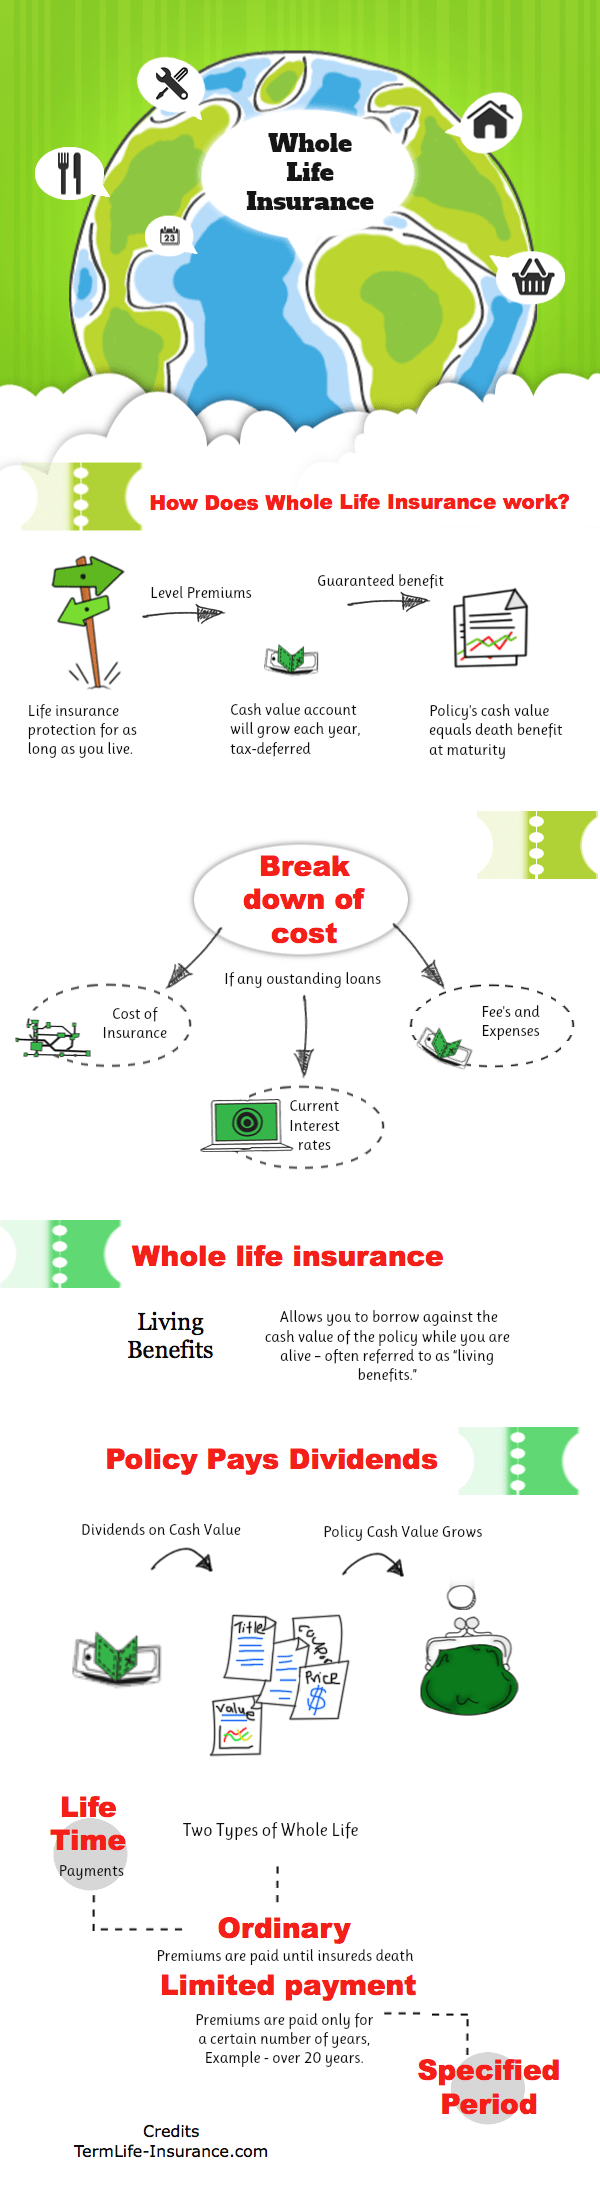 Free Whole Life Insurance Quotes Inspiration Instant Whole Life Insurance Quotesup To $100000 In Coverage.